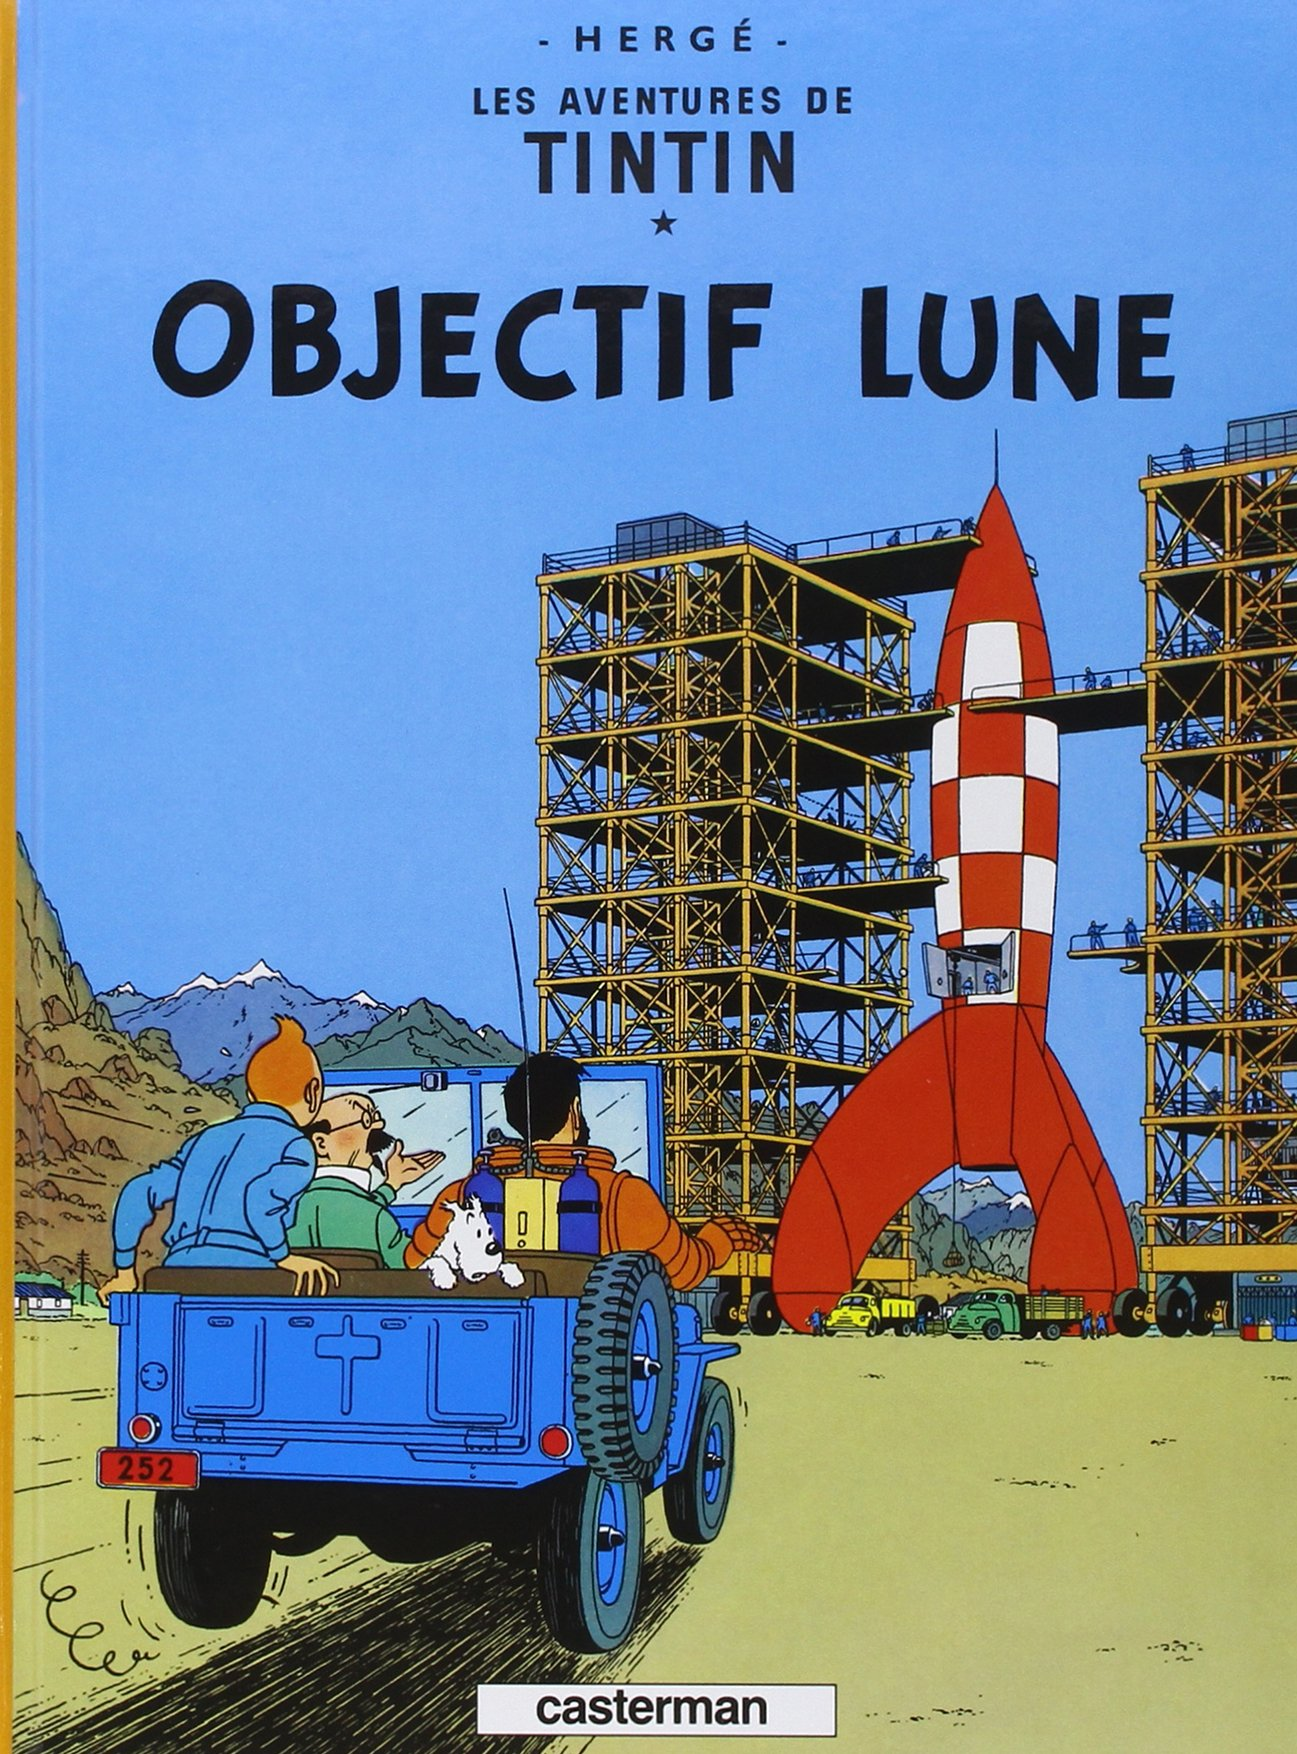 7. Les Aventures de Tintin By Hergé - one of the top 10 translated books in the world